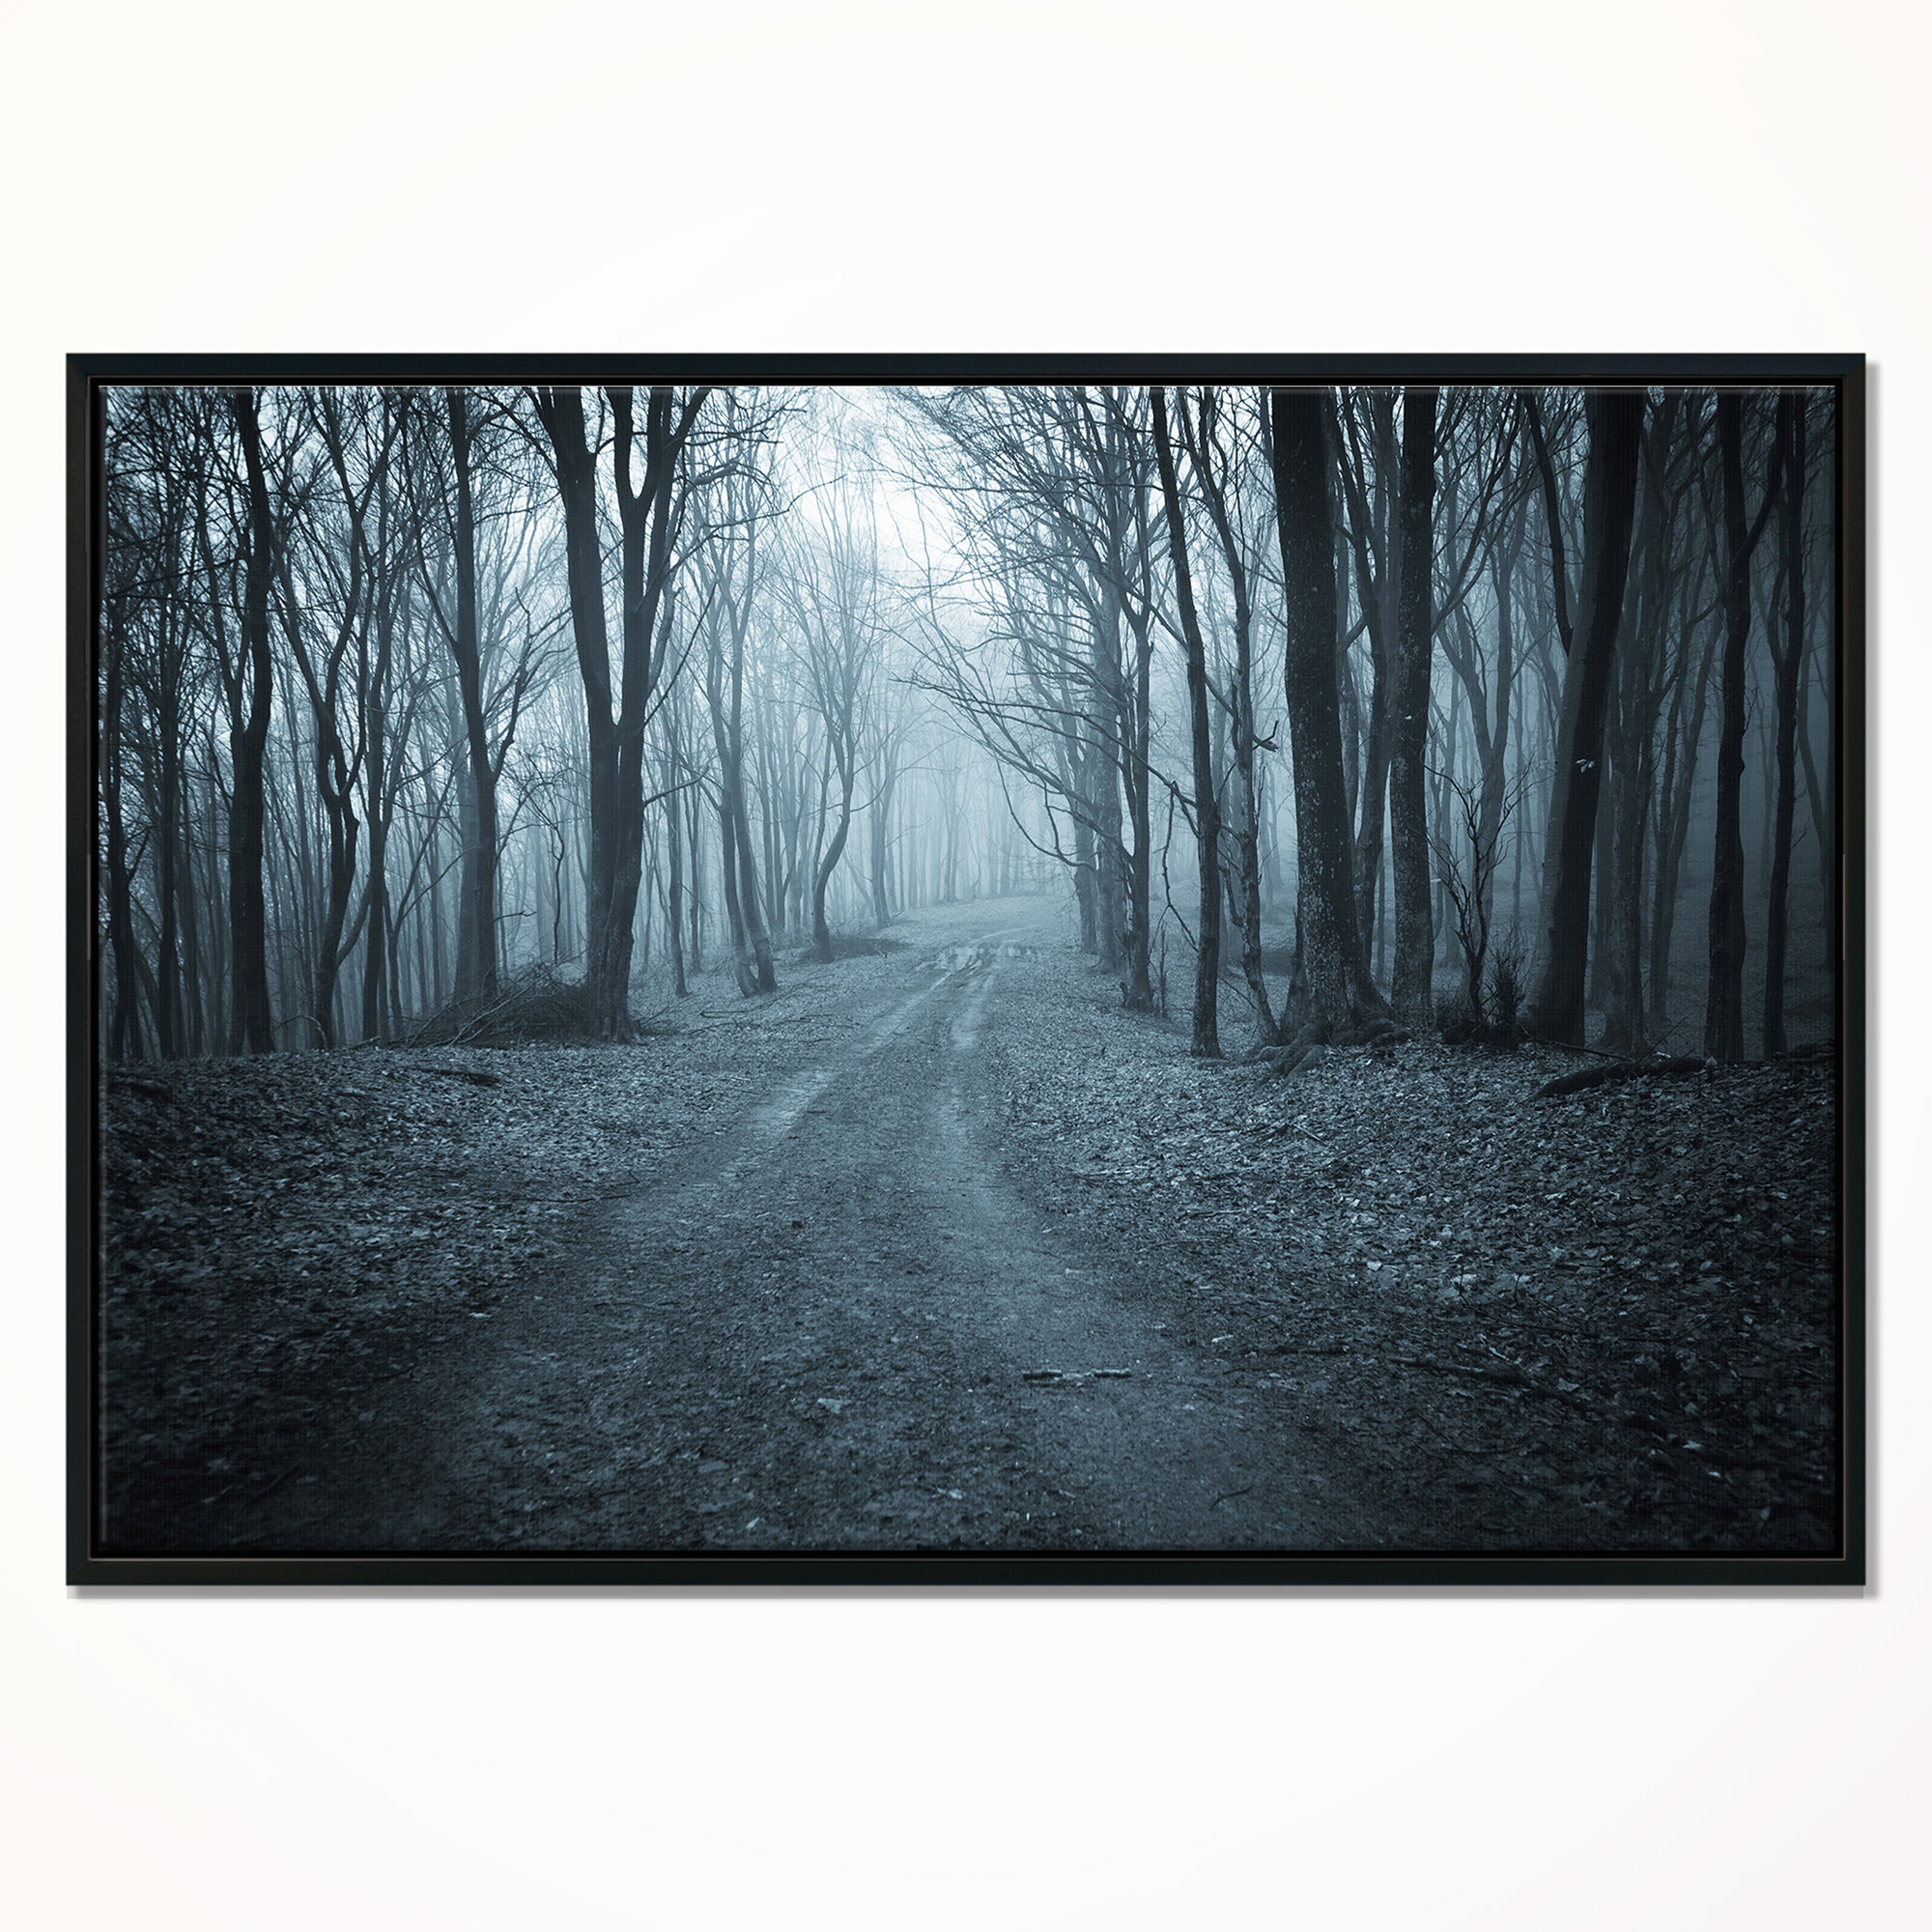 East Urban Home Landscape Dark Scary Forest With Fog Framed Photographic Print On Wrapped Canvas Wayfair